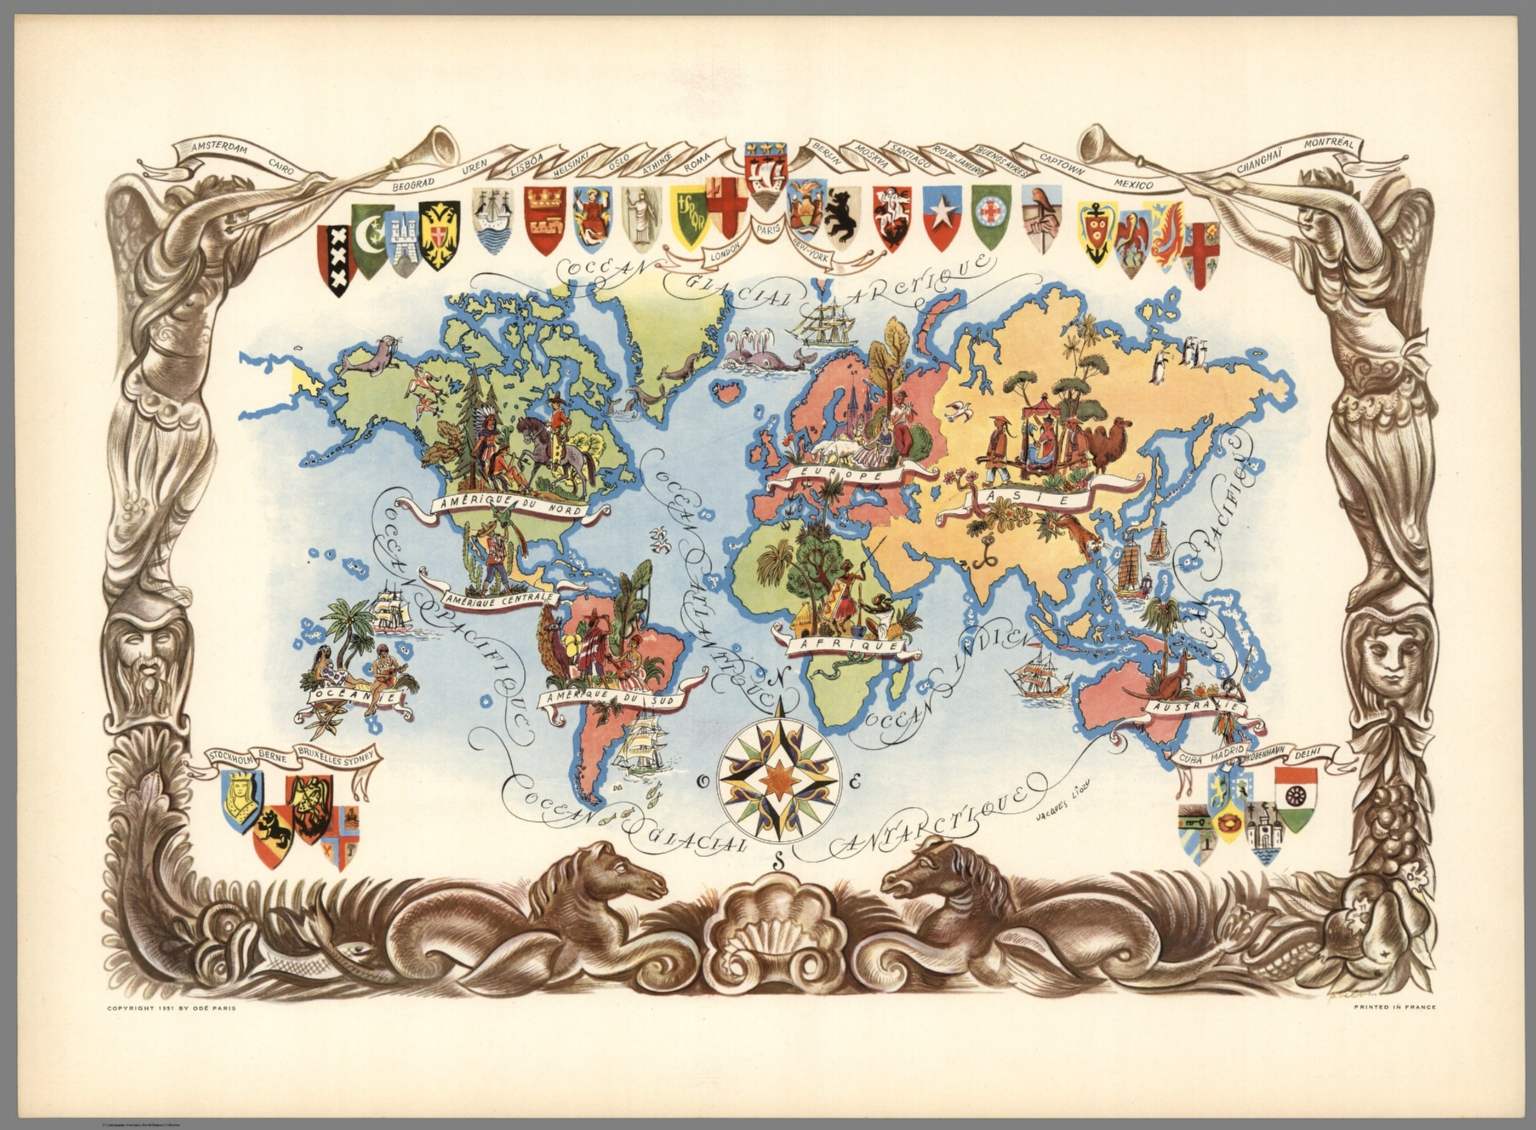 (World Pictorial Map), Jacques Liozu, 1951